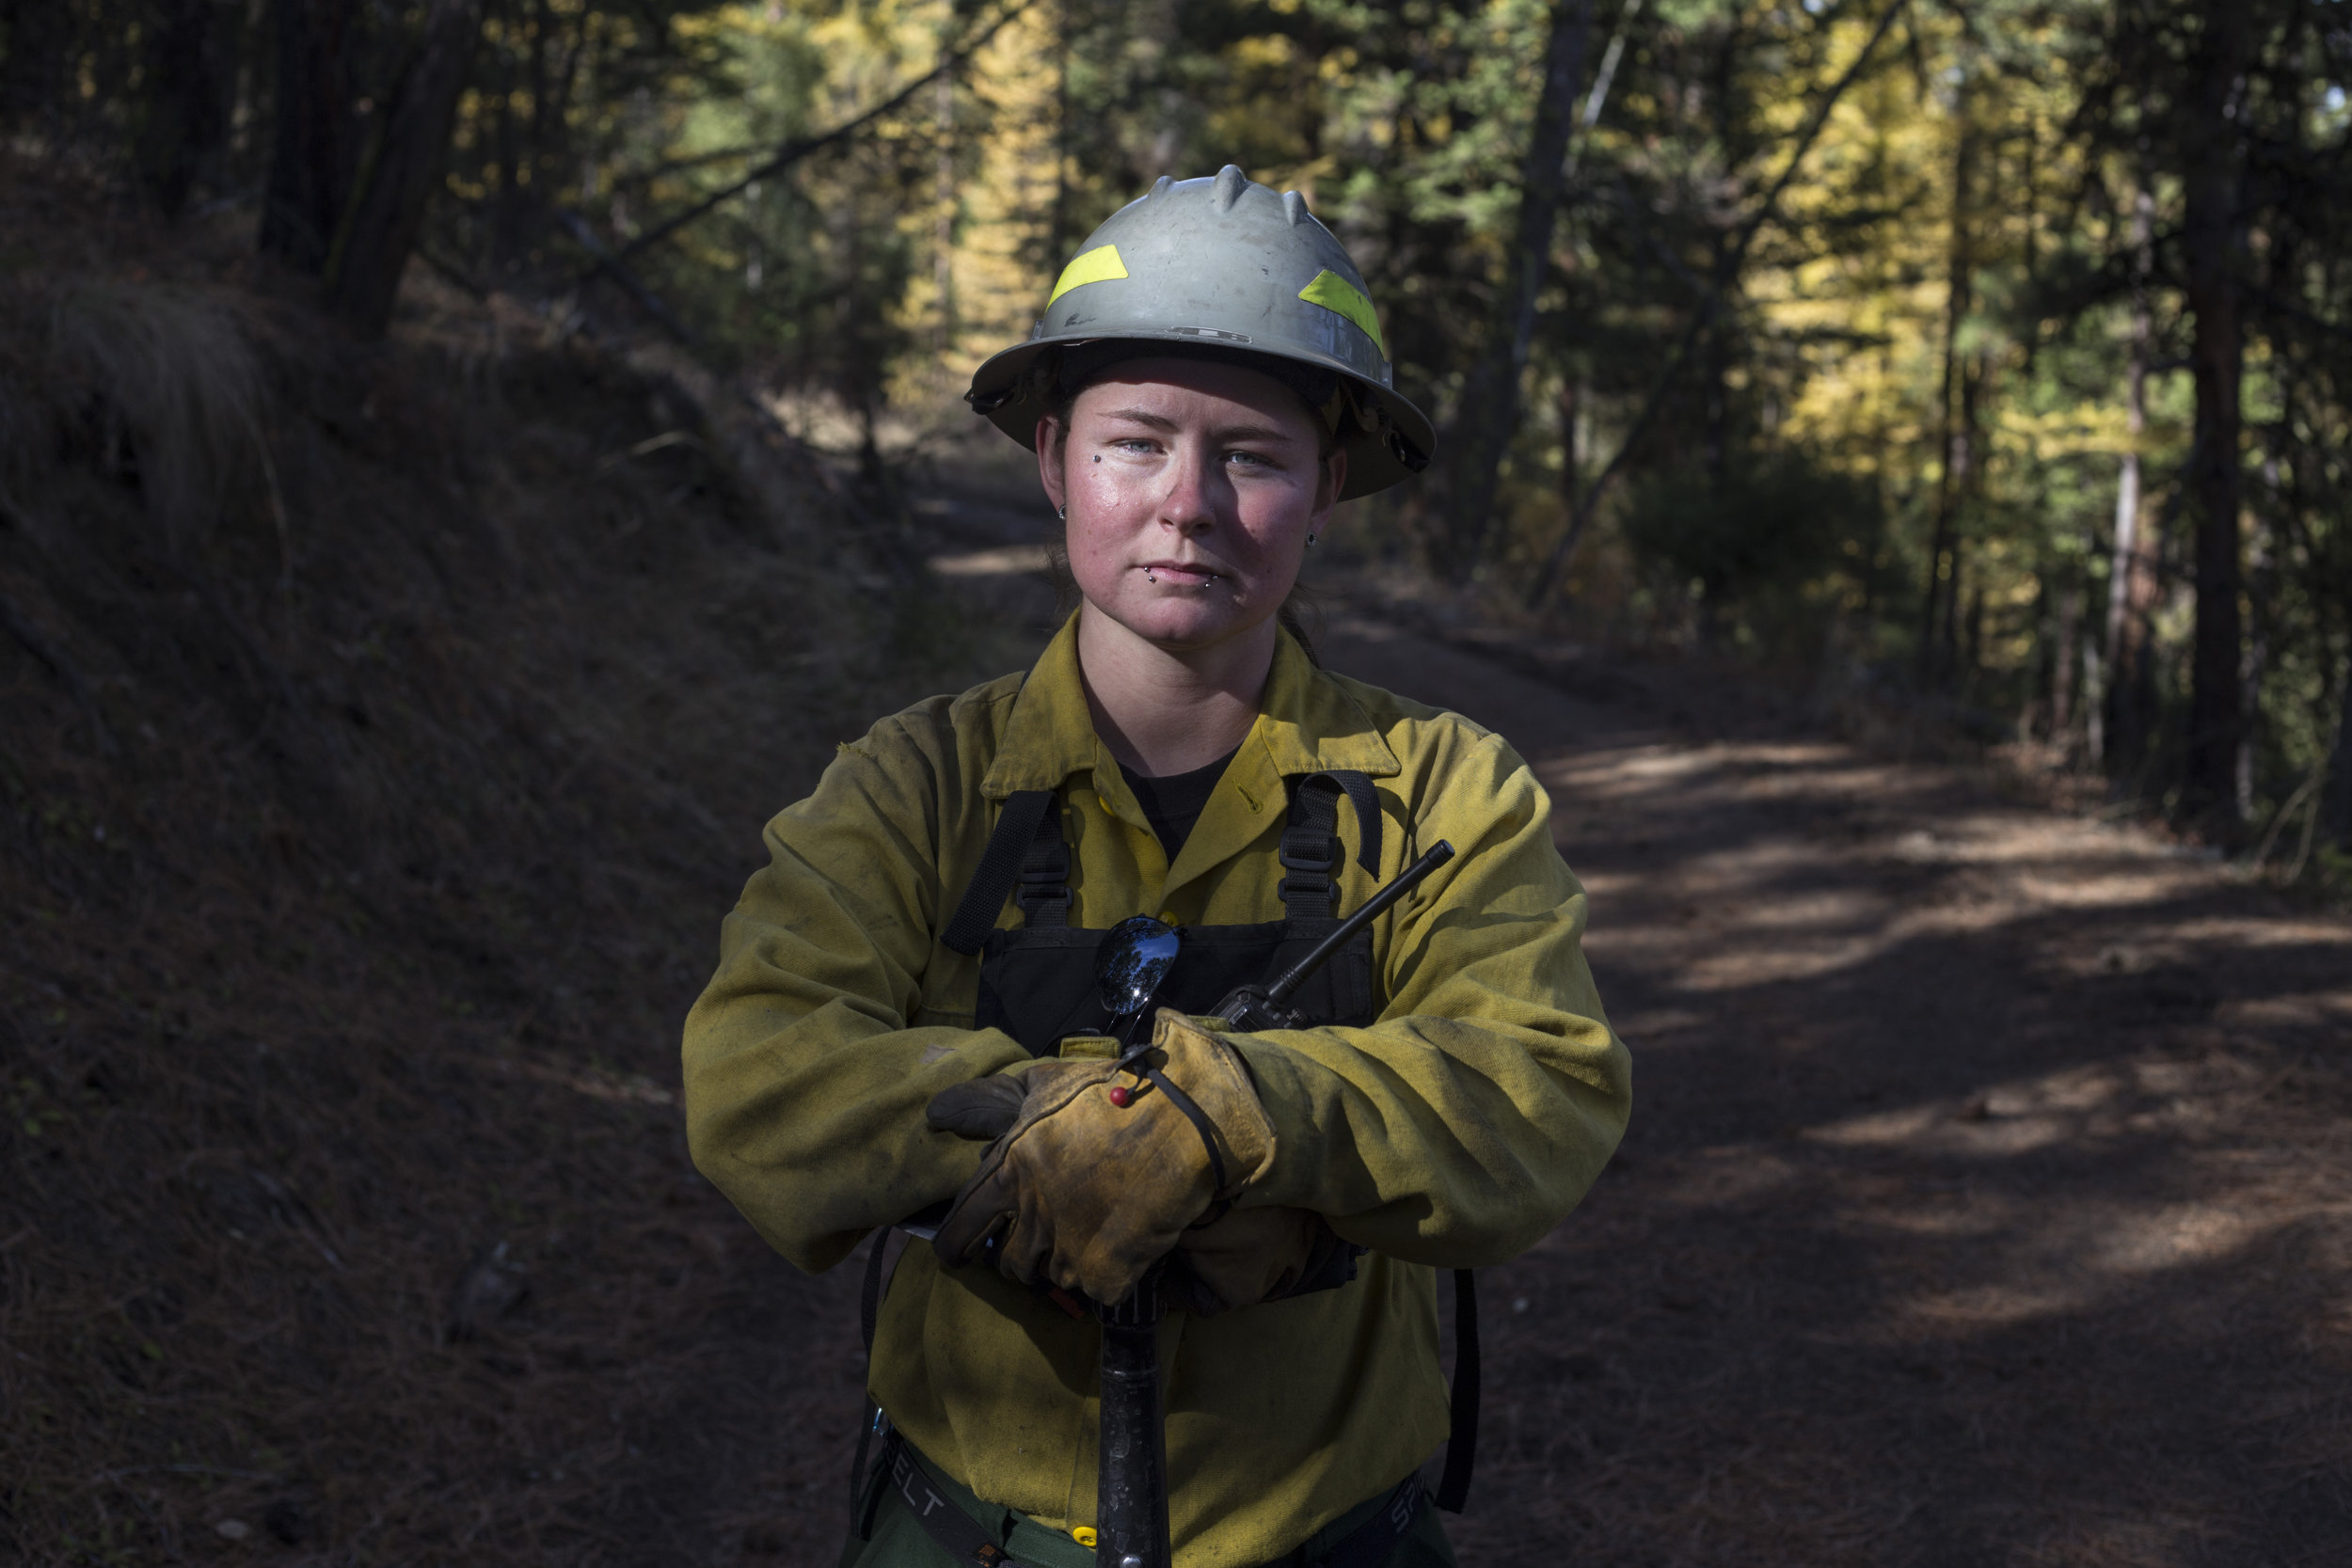 Lindsay Burland Roullier, 27, an enrolled member of the Confederated Salish and Kootenai Tribe, a forest technician and wild and fire fighter, at the site of a controlled burn she had been working outside of Elmo, Montana., on Tuesday, October 24, 2017. Roullier's father worked as a member of the CSKT Division of Fire for nearly 22 years when he was killed by a drunk driver coming home from work. She said she started the job as a way of honoring his legacy.